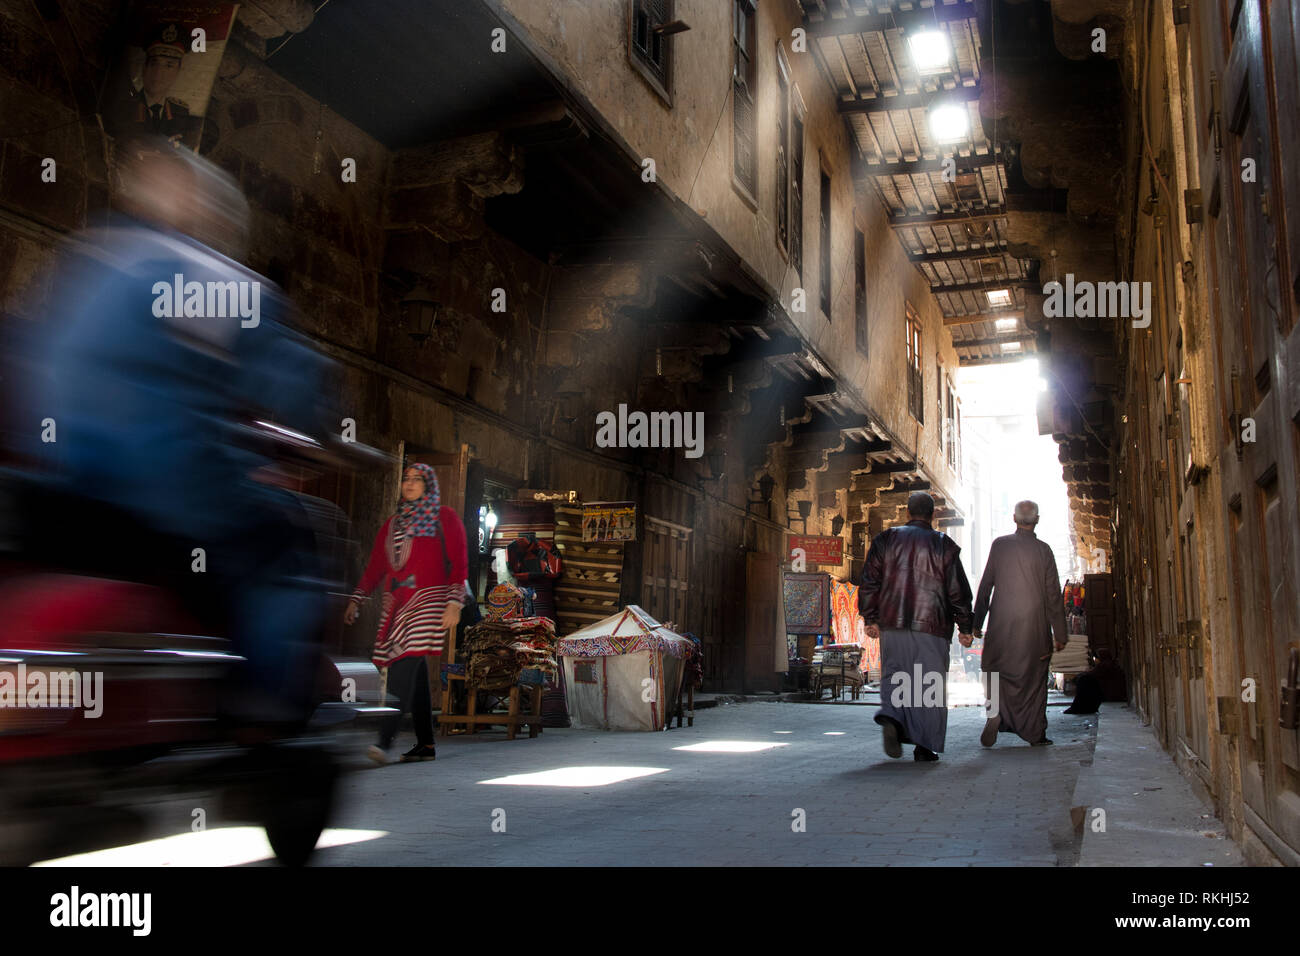 A busy covered street at Traditional Islamic Cairo in Egypt, wit people walking and a scooter passing at high speed - Stock Image